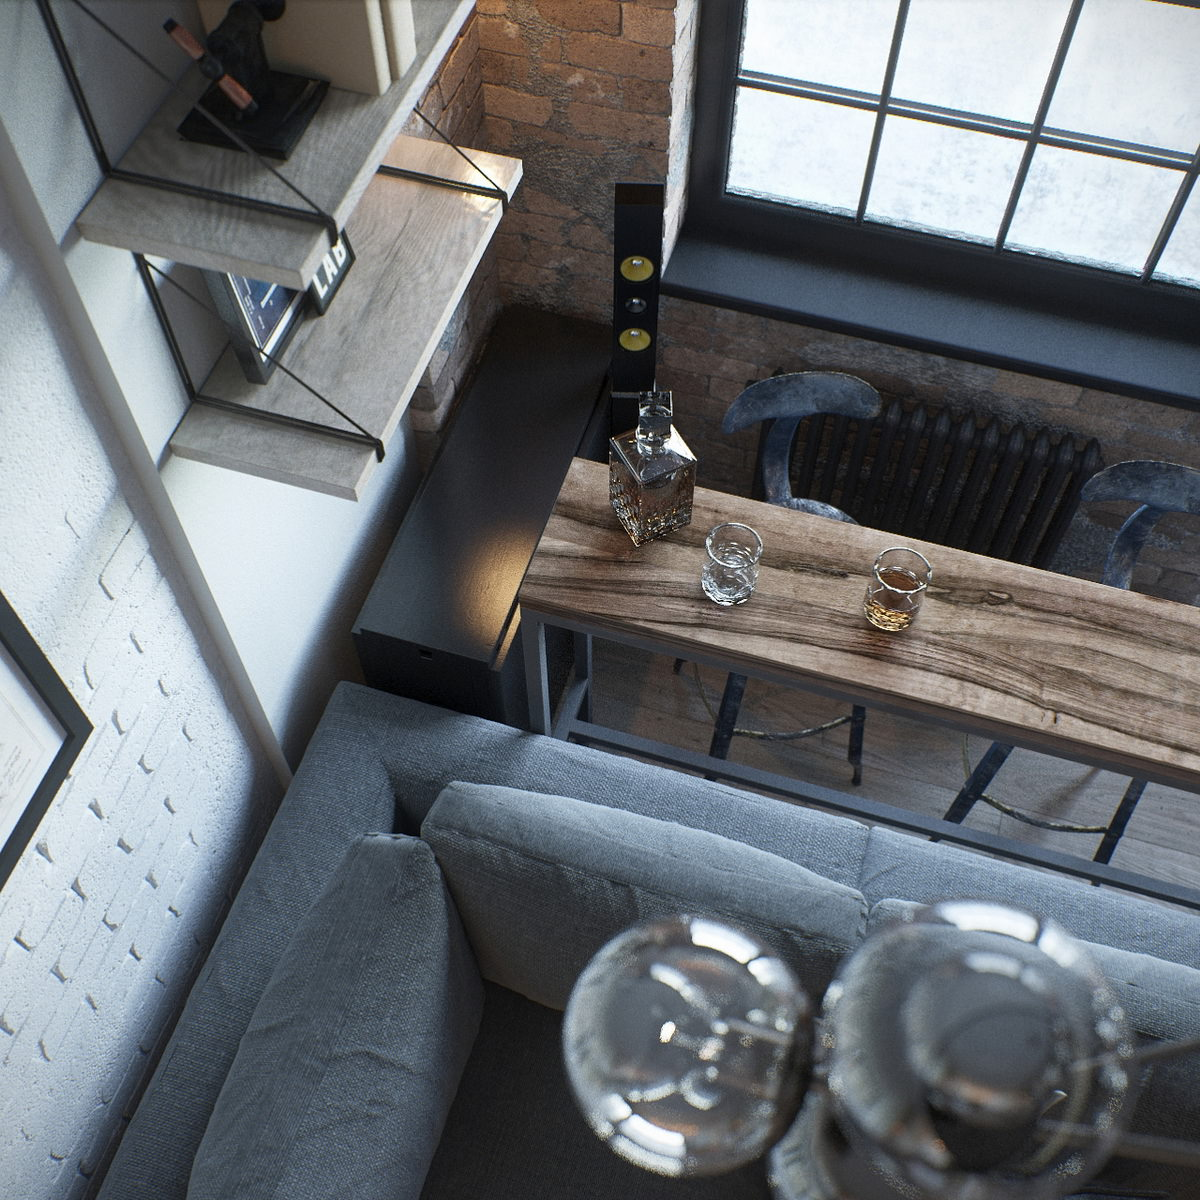 photorealistic-rendering-loft-style-room-top-view-wood-brick-glass